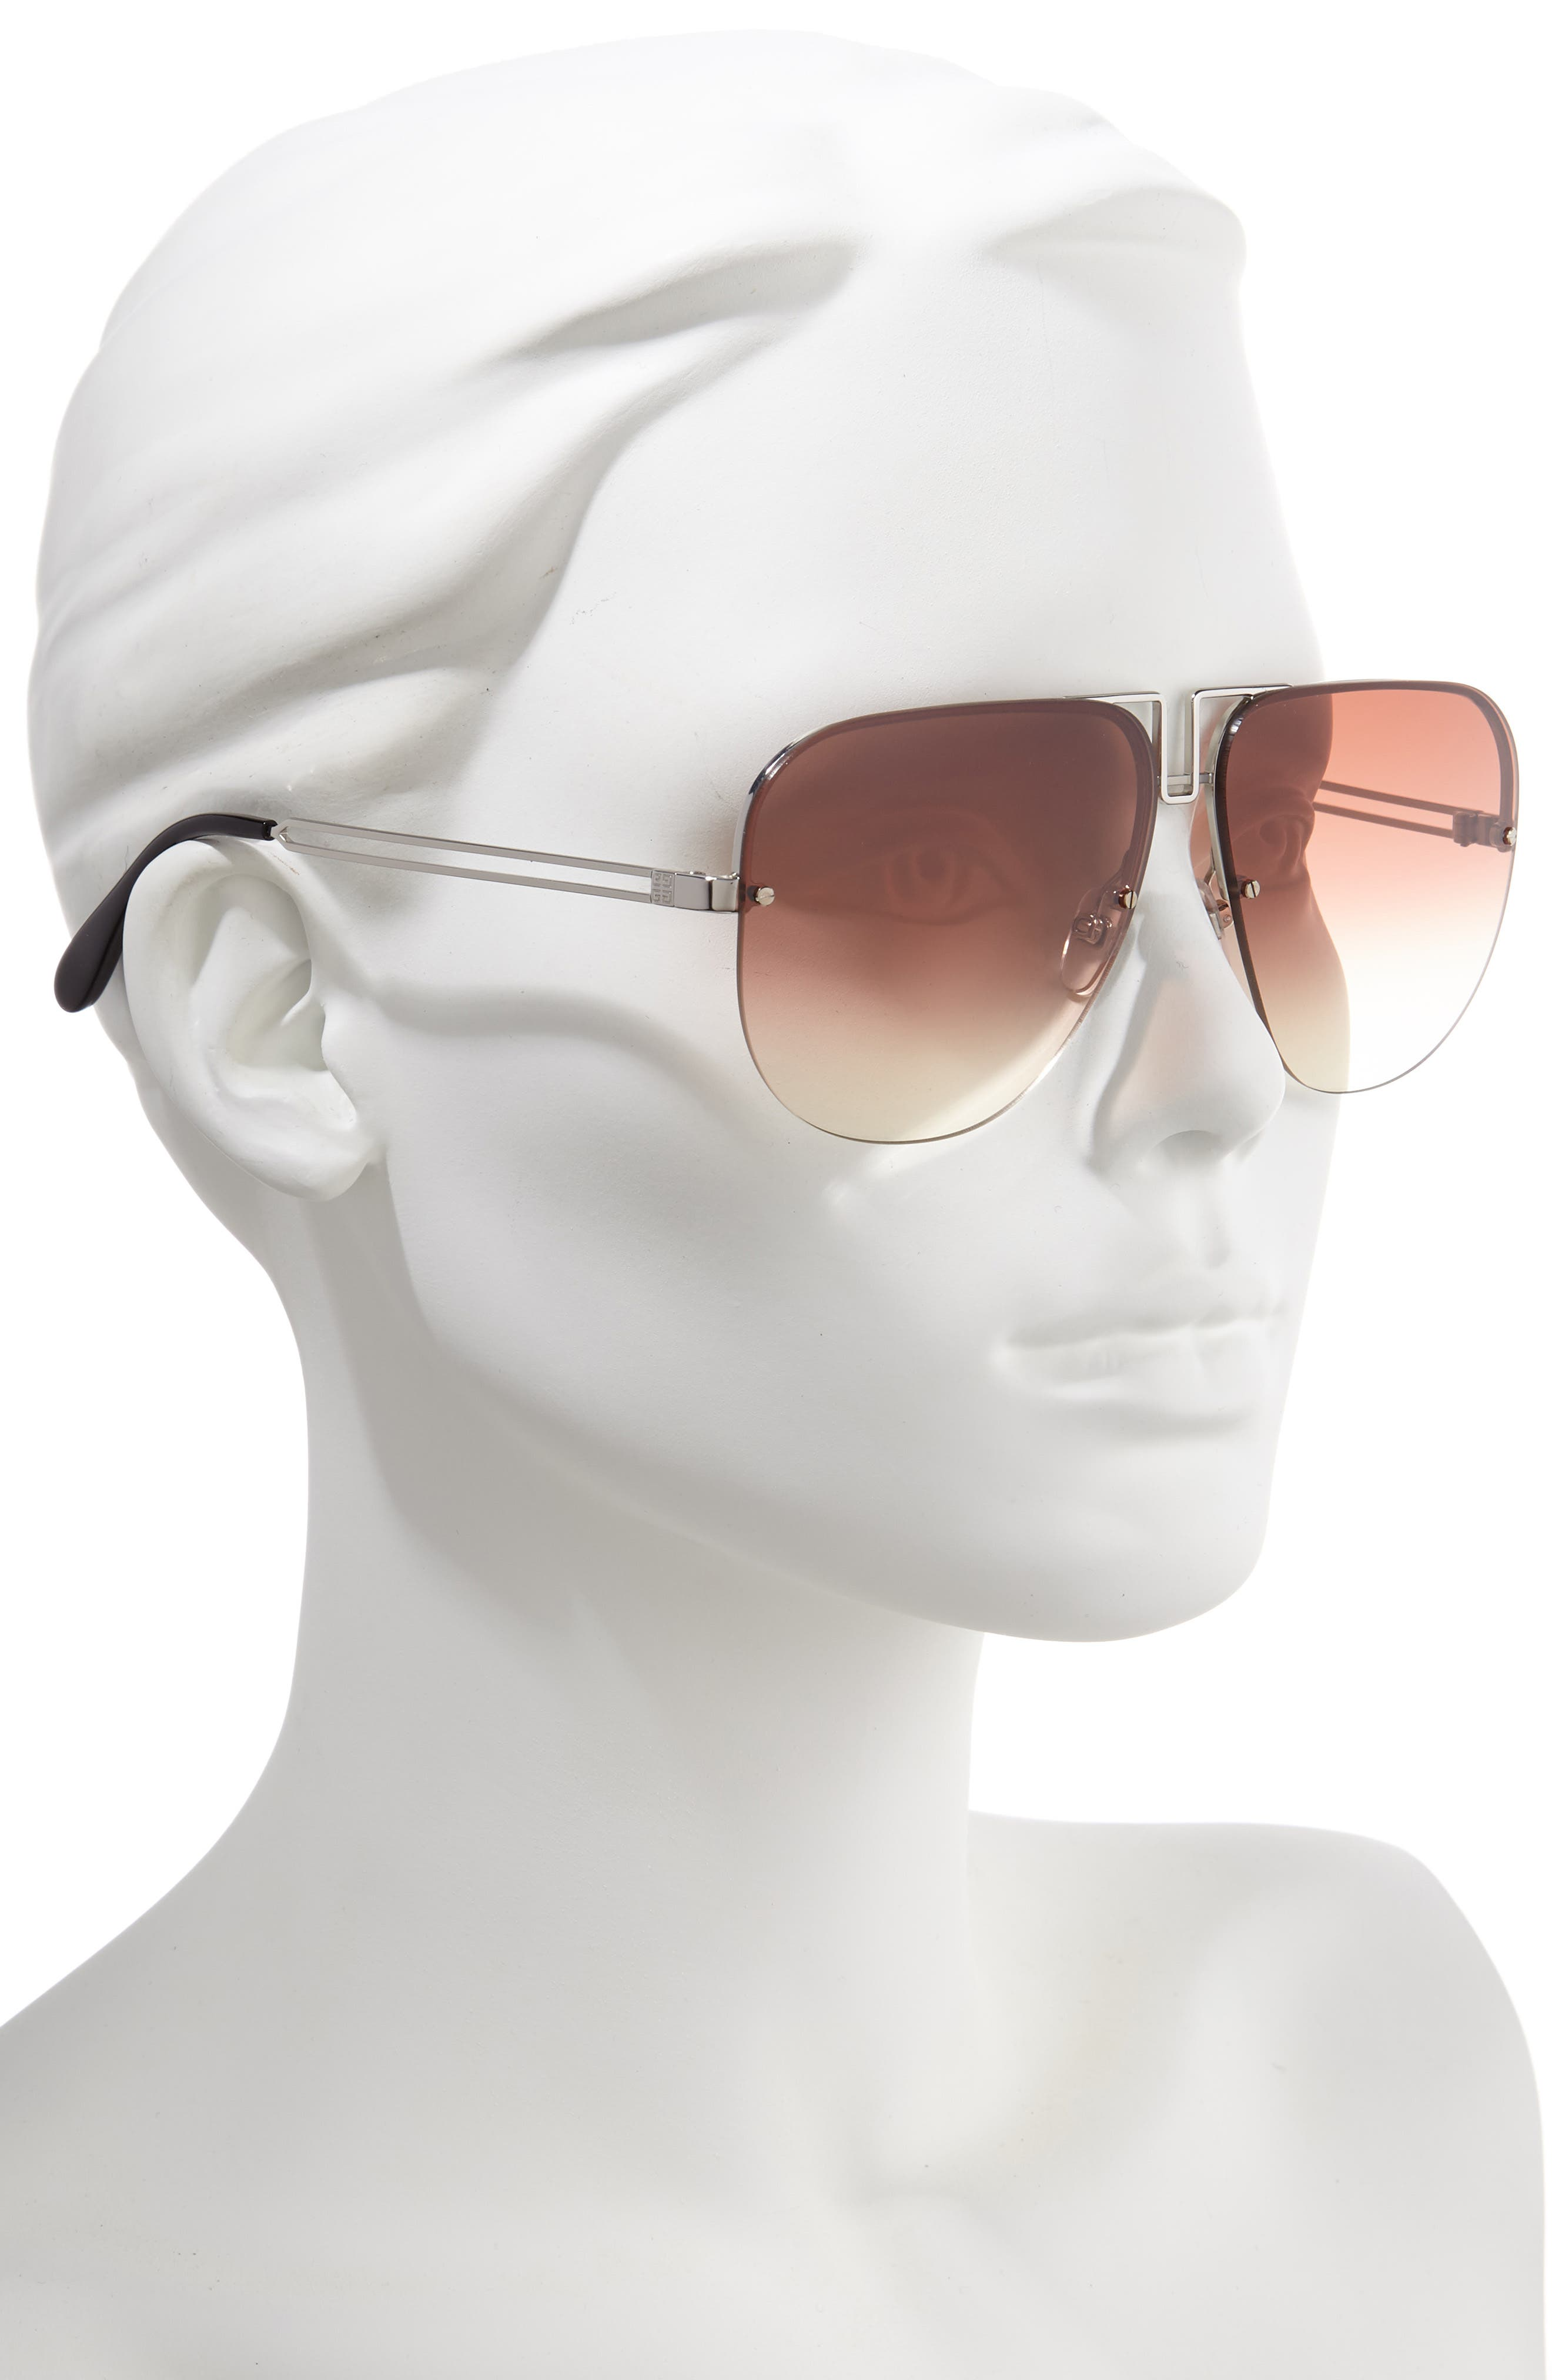 GIVENCHY,                             64mm Oversize Aviator Sunglasses,                             Alternate thumbnail 2, color,                             PALLADIUM/ COPPER